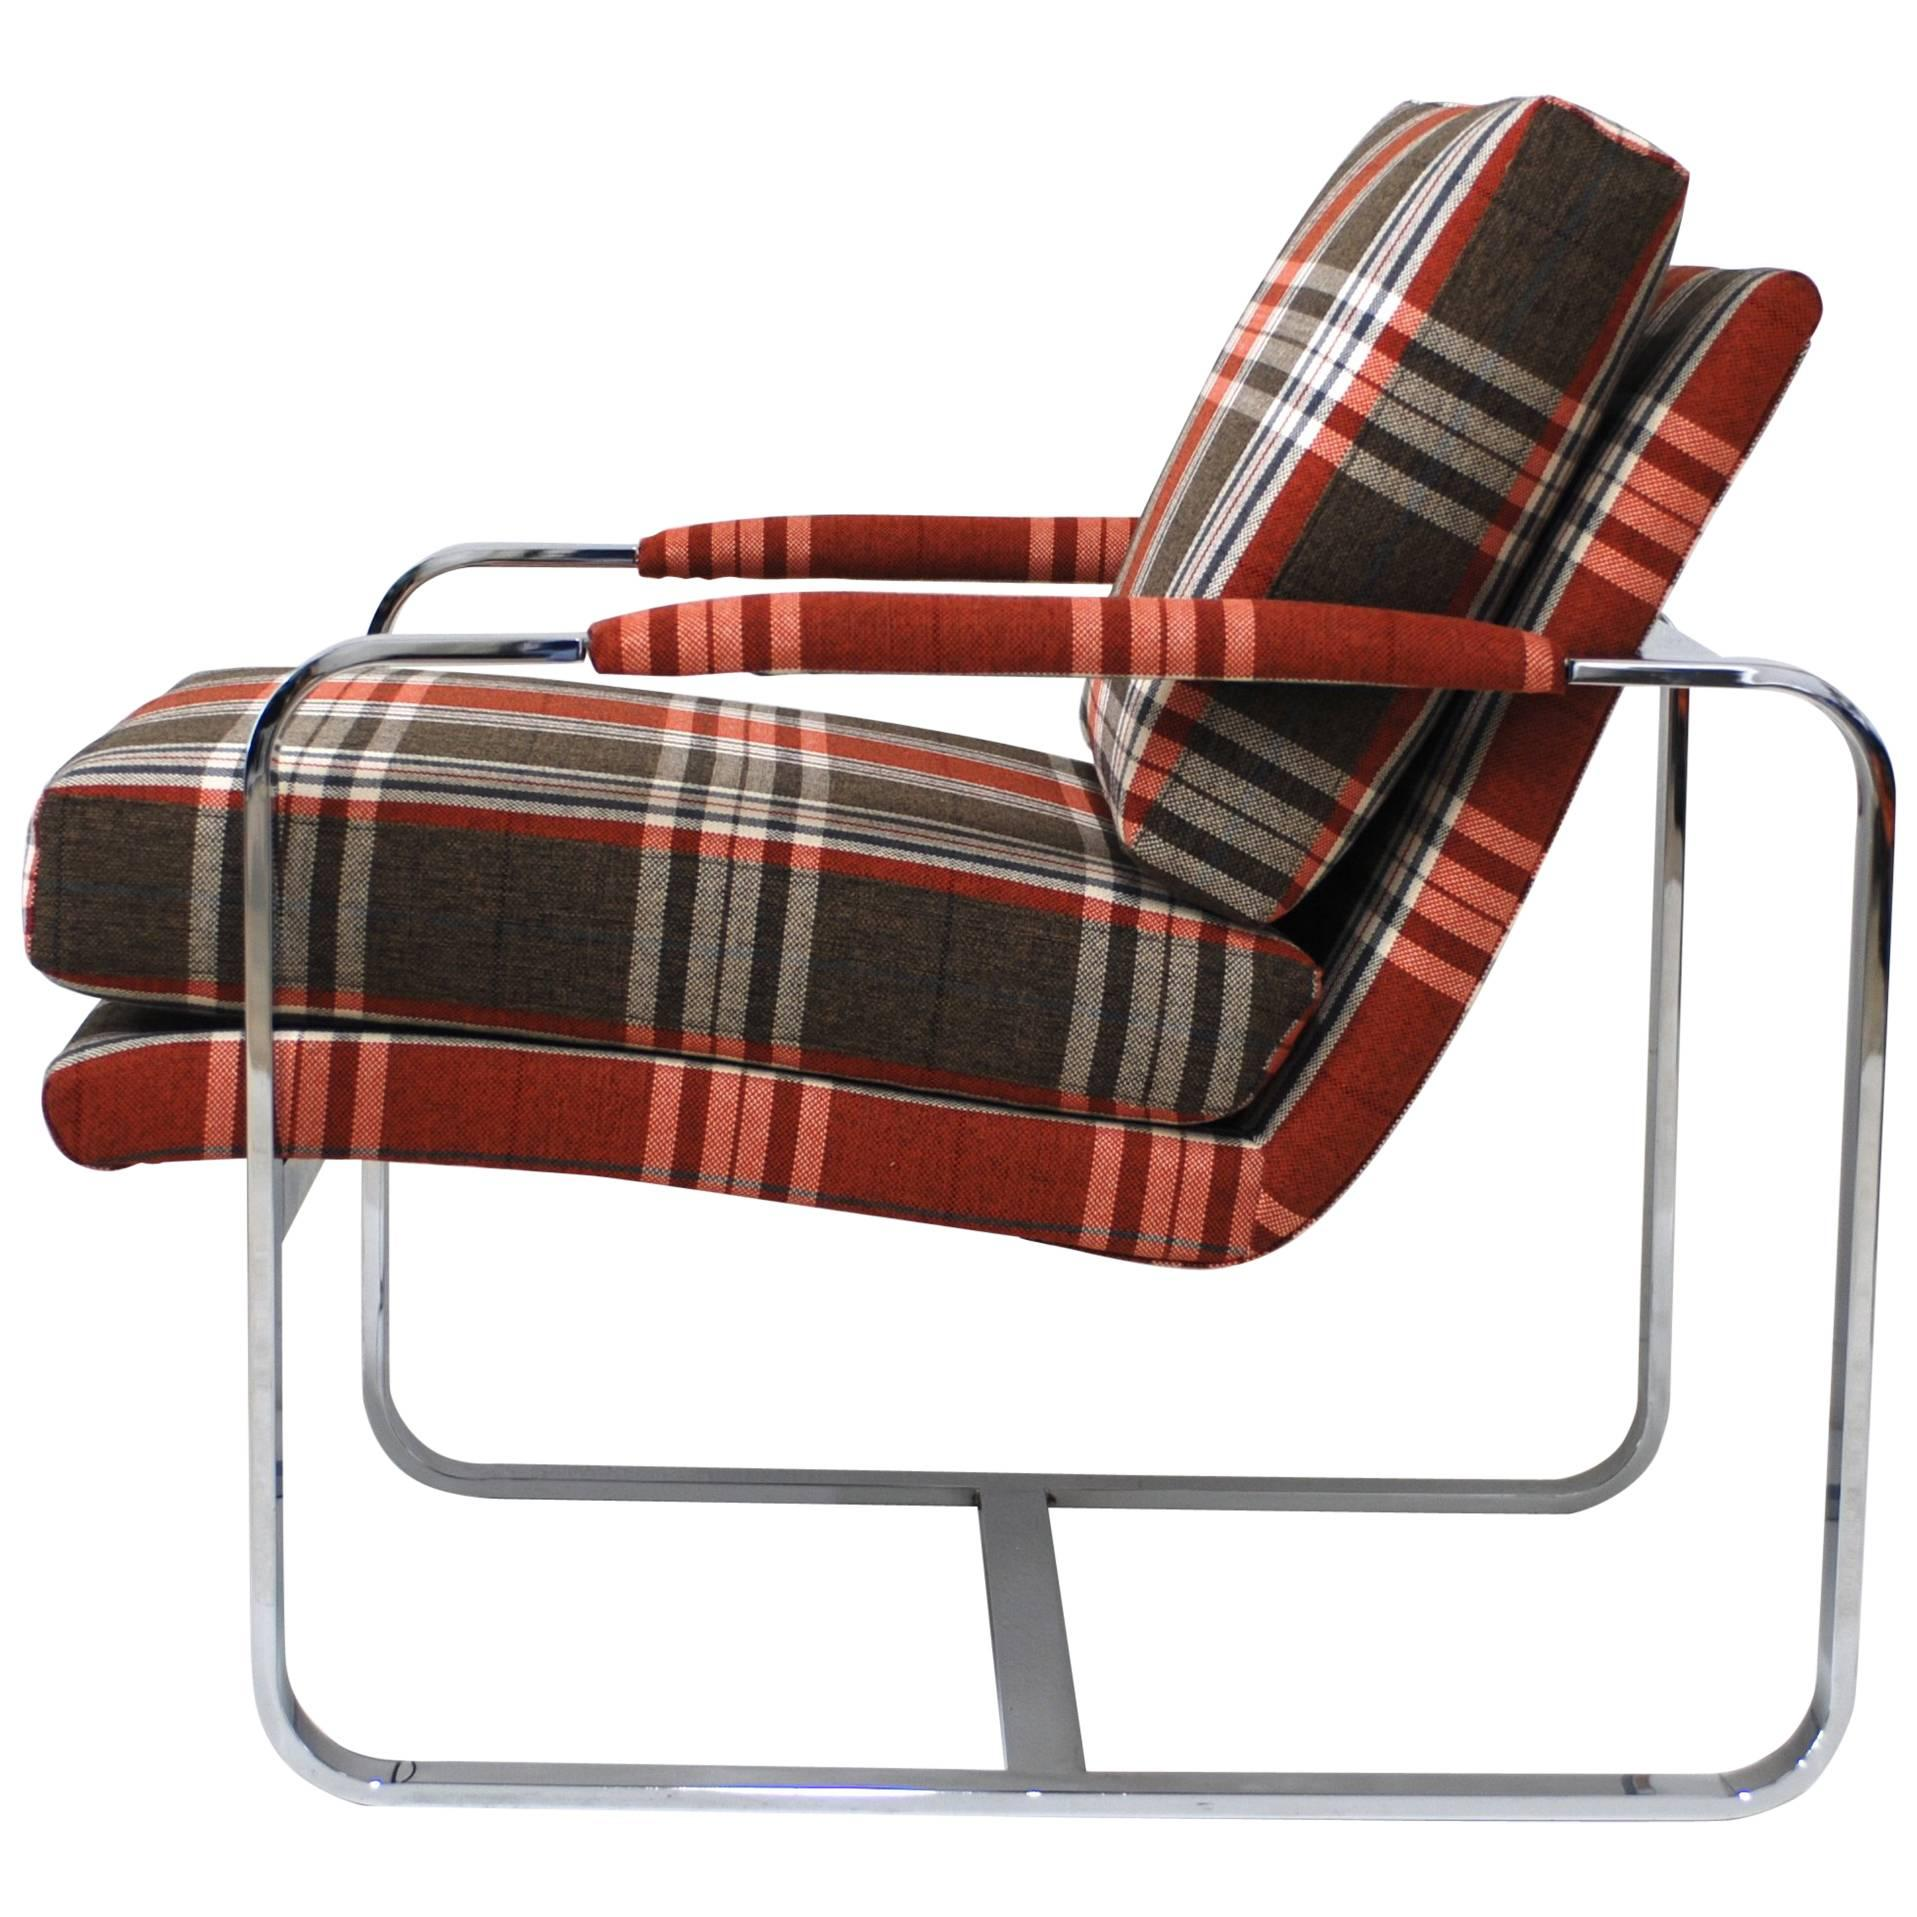 Chrome Milo Baughman Style Lounge Chair With Tartan Fabric For Sale